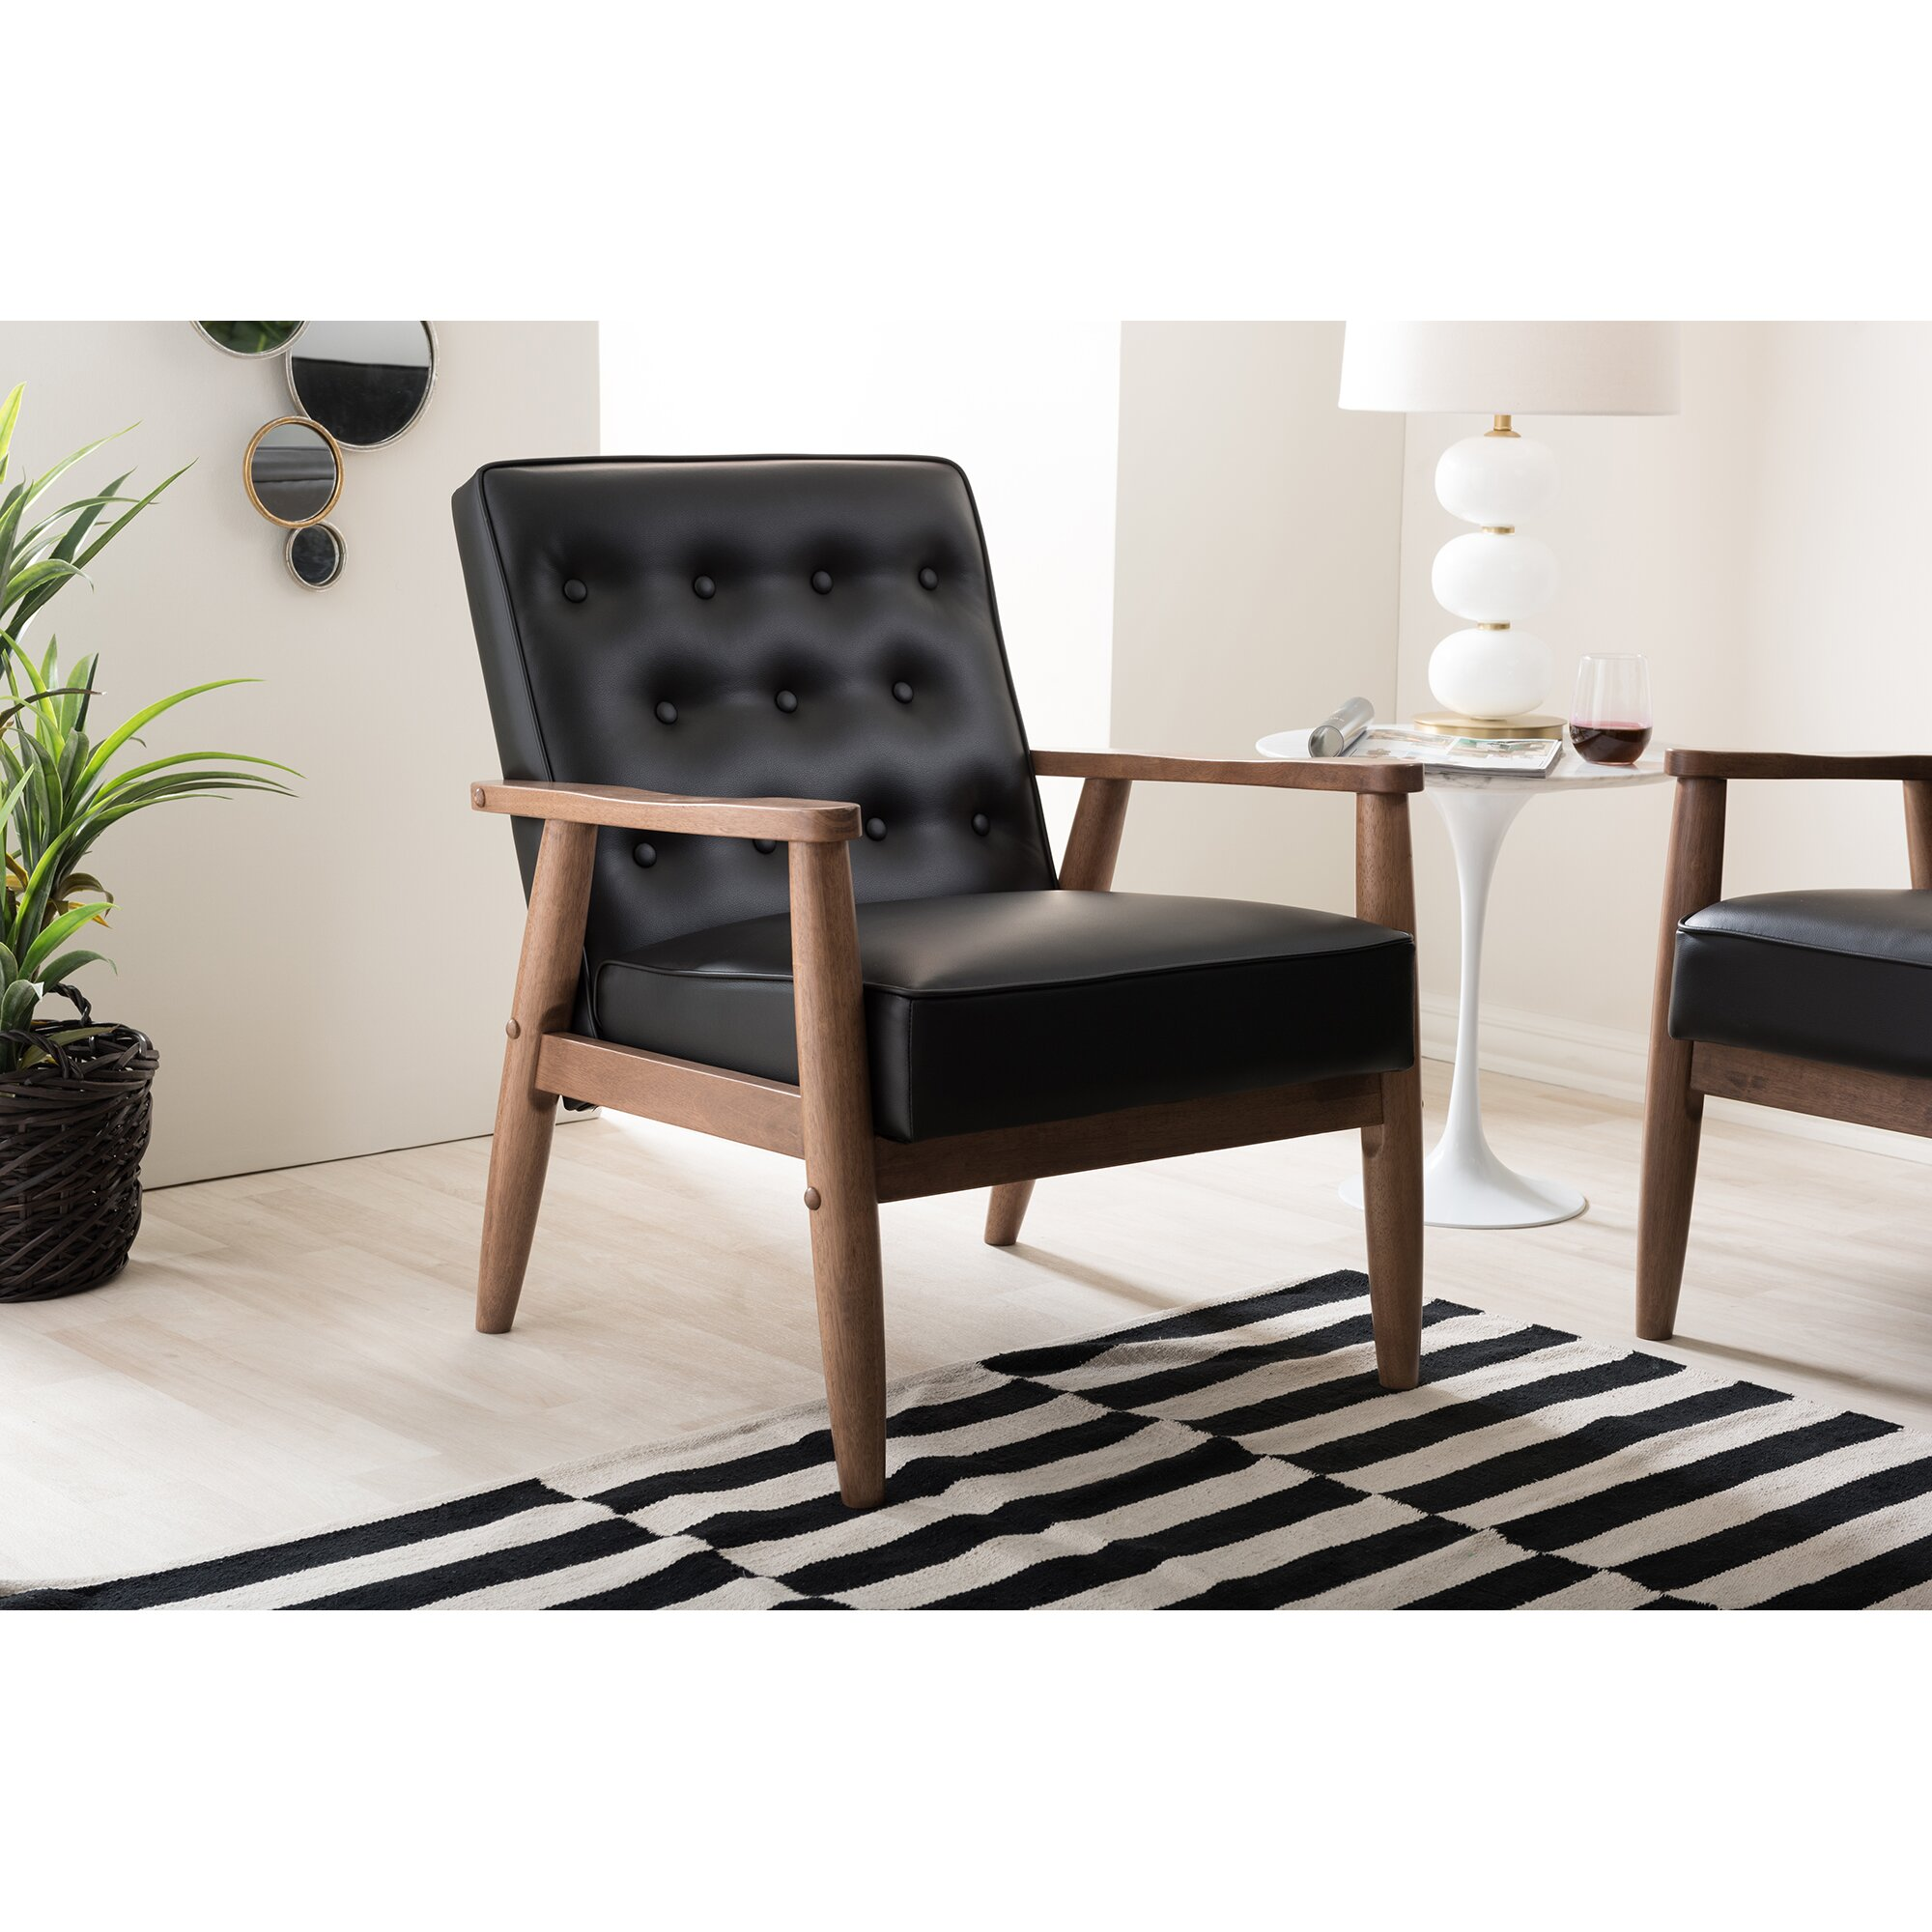 Wholesale Interiors Baxton Studio Lounge Chair amp Reviews  : Baxton Studio Sorrento Mid century Retro Modern Black Faux Leather Upholstered Wooden Lounge Chair from www.wayfair.com size 2000 x 2000 jpeg 515kB